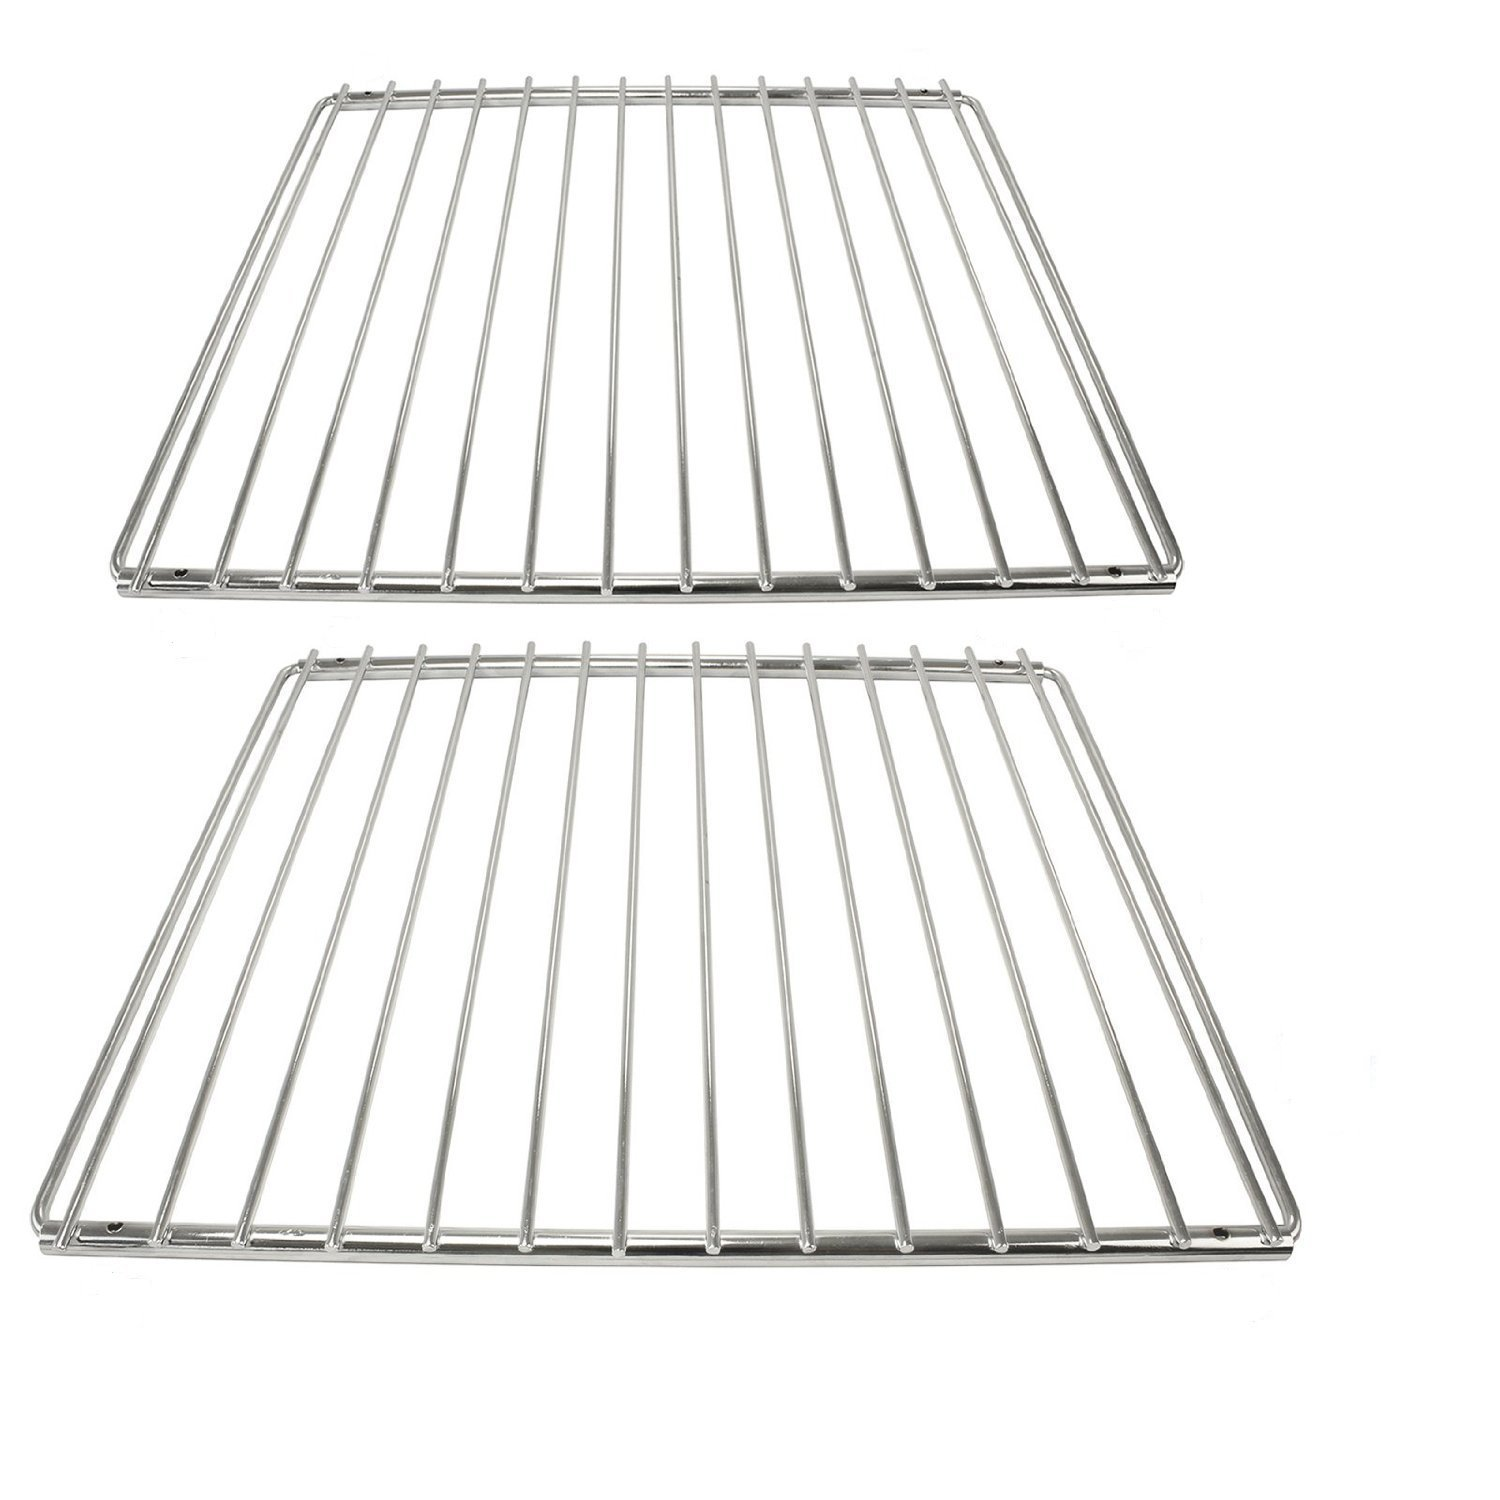 CookSpace ® Chrome Adjustable Universal Fixed Arm Grill Shelf for all Makes of Oven Cooker & Grill (Pack of 2, 320mm x 360 / 620mm)